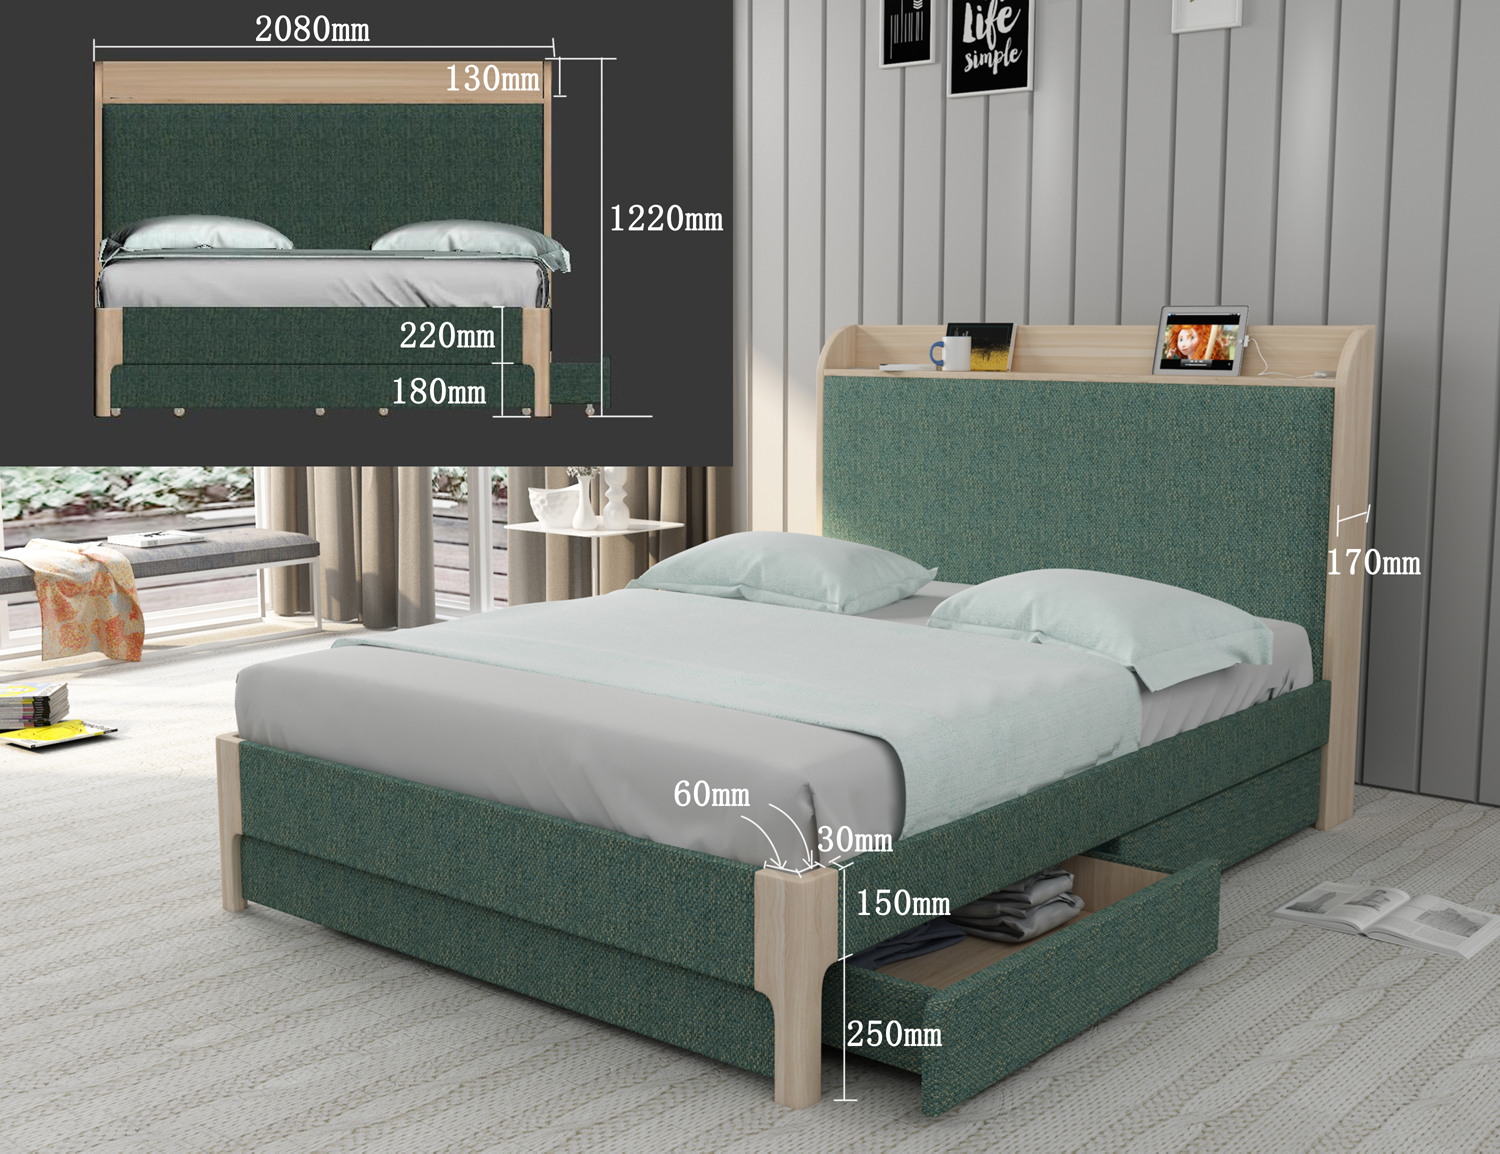 Upholstery Divan King Storage Bed Design In Wooden Drawer Double Bed Buy Drawer Double Bed Divan Bed Design In Wooden King Storage Bed With Drawers Product On Alibaba Com